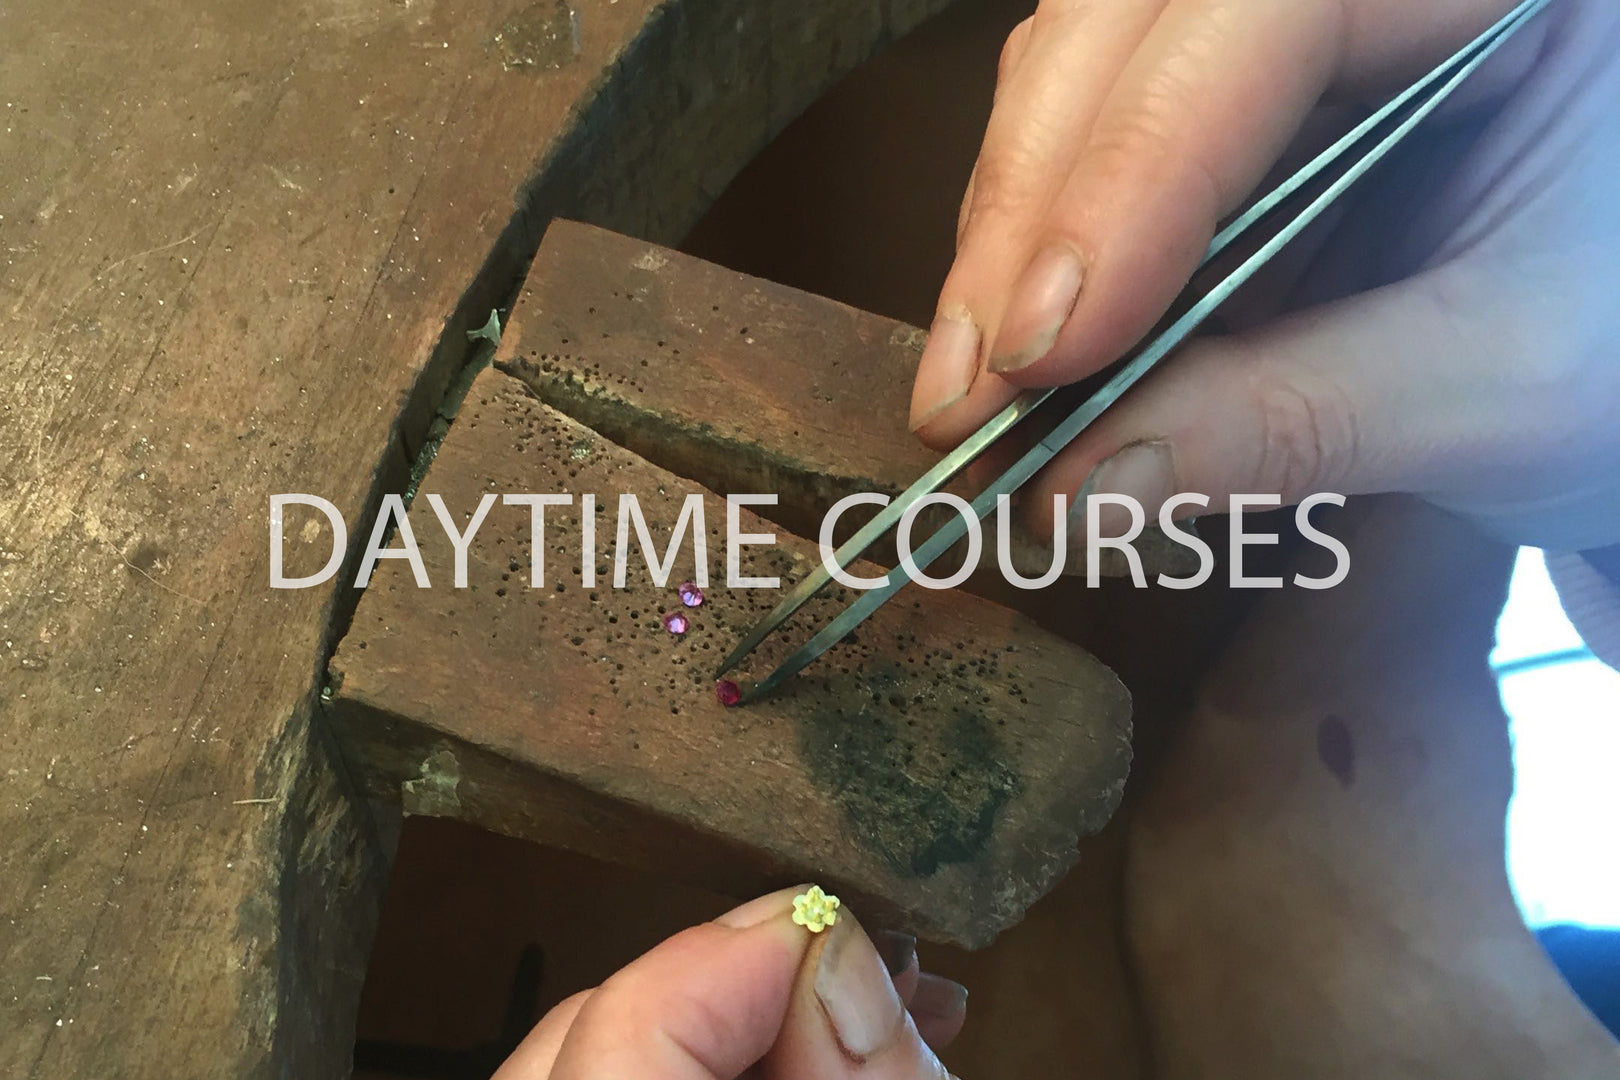 Daytime Courses